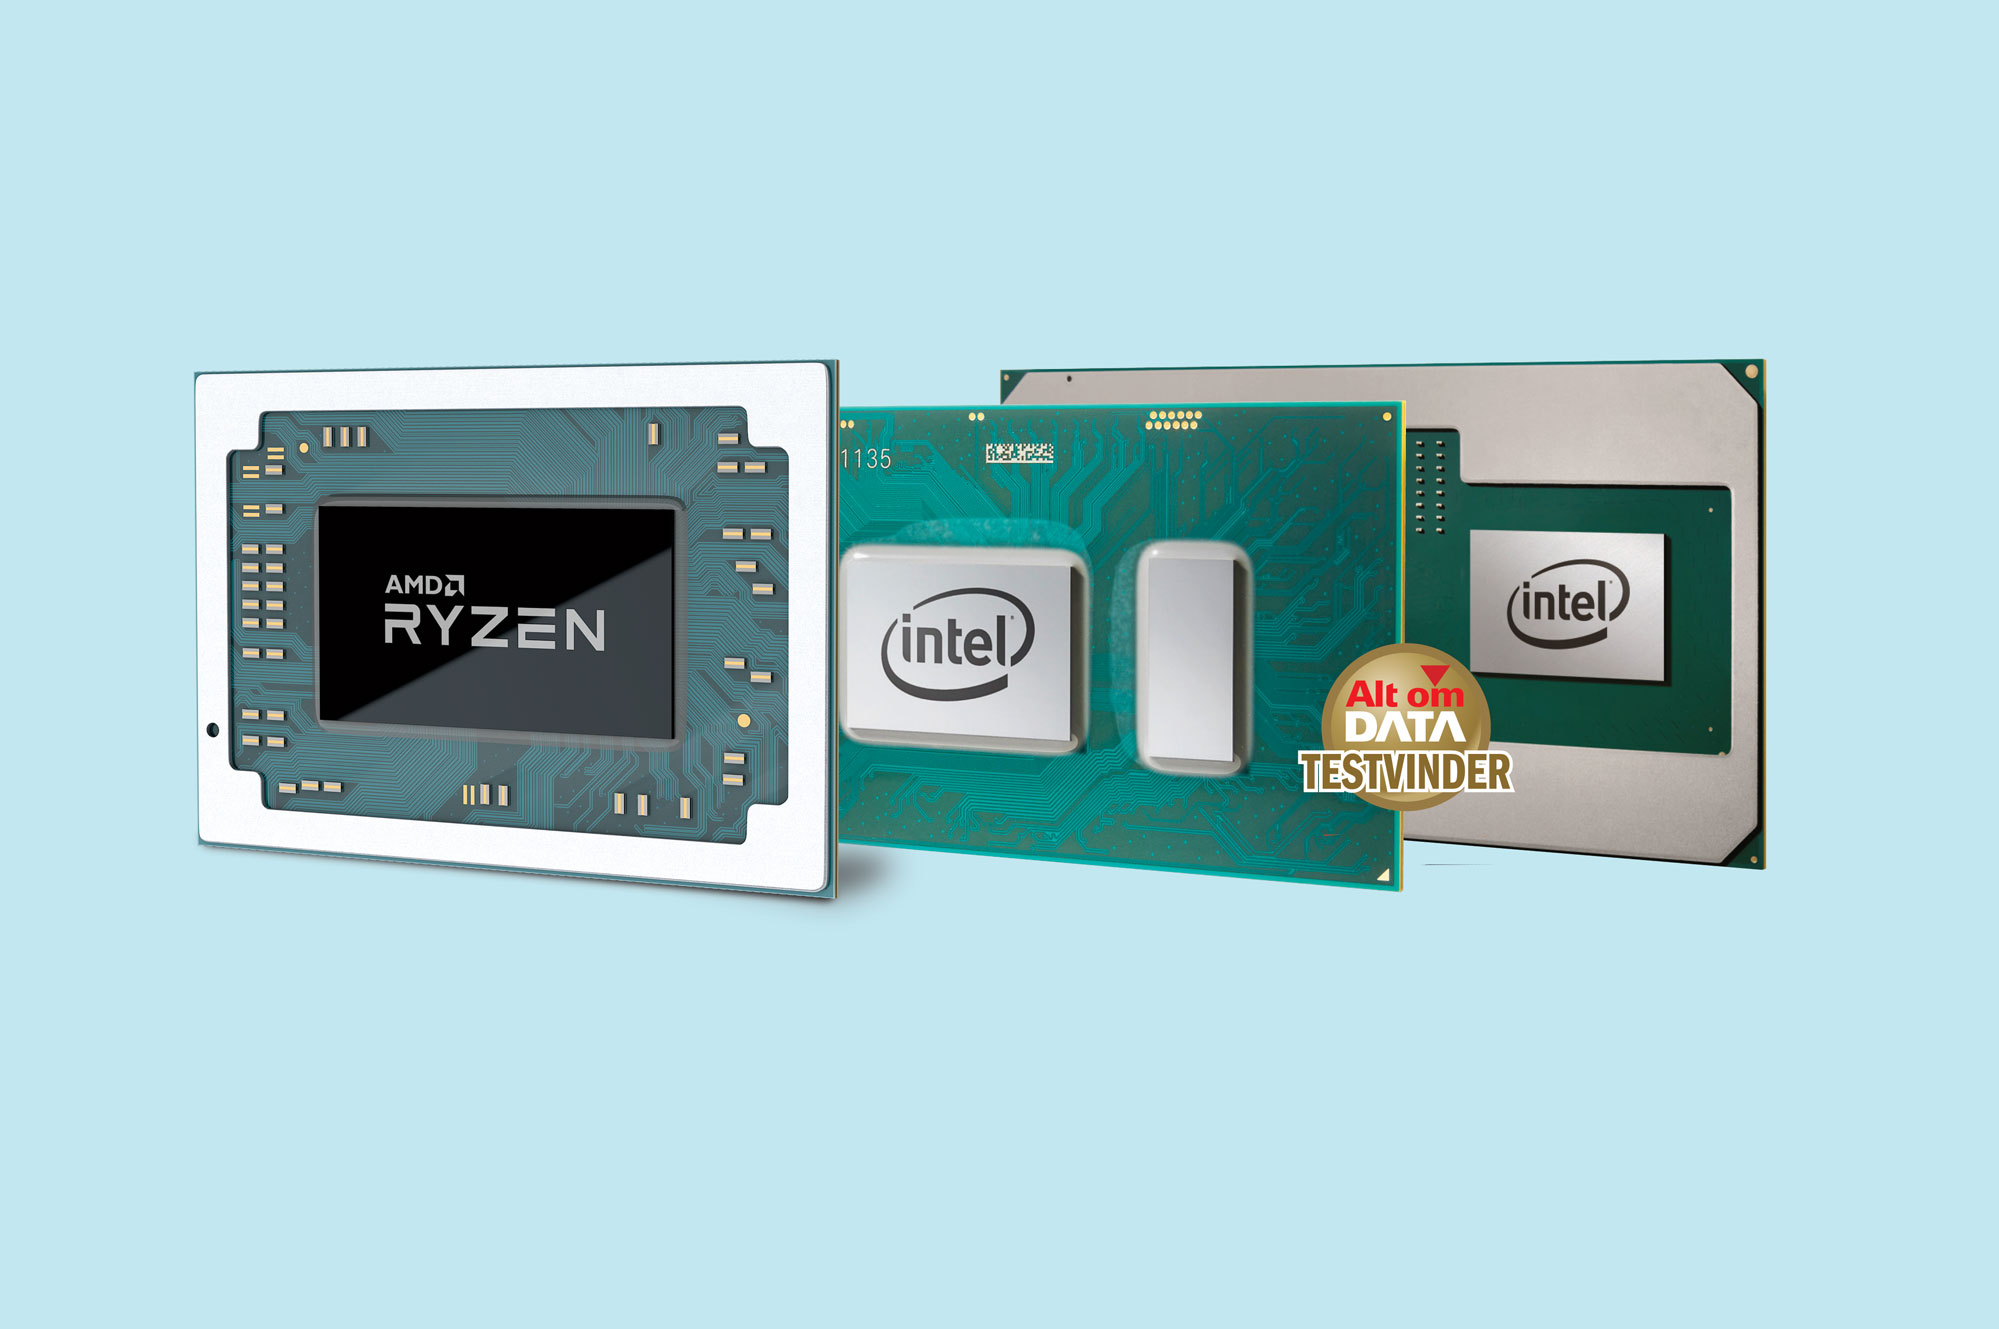 AMD Ryzen Mobile vs. Intel 8th Gen Mobile [TEST]: Hvilken mobilprocessor er bedst?